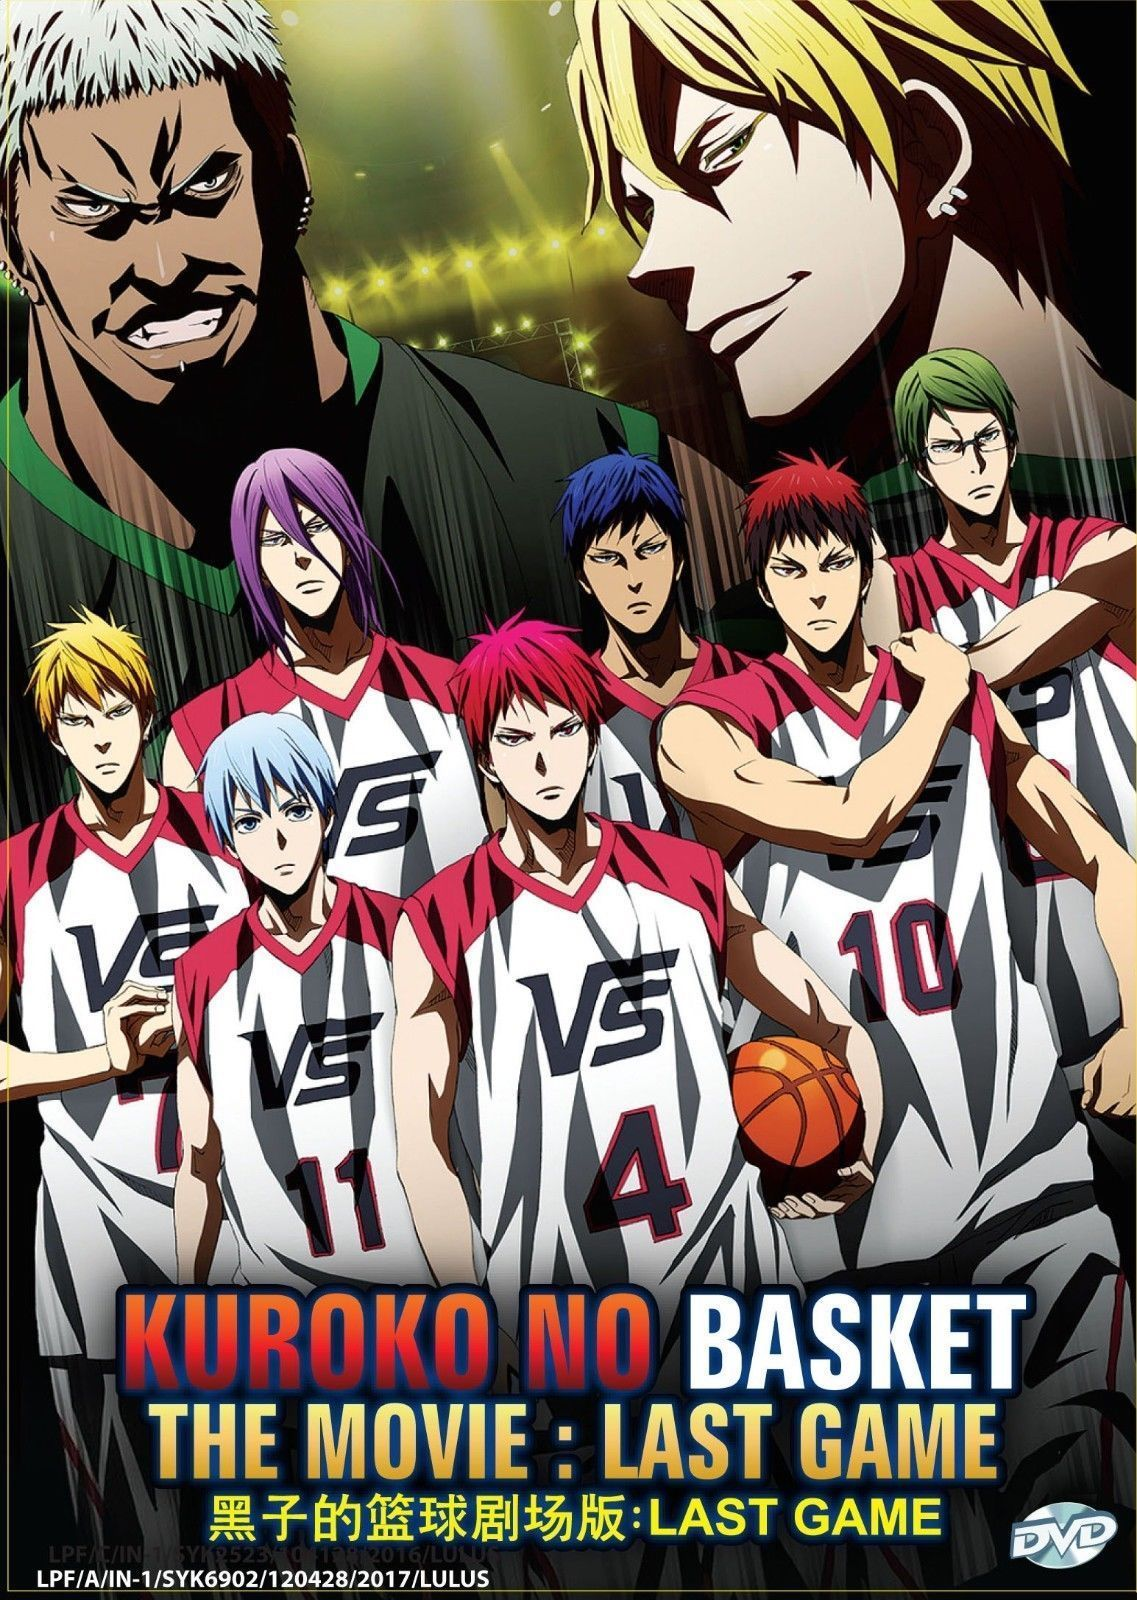 kuroko no basket last game full movie download free